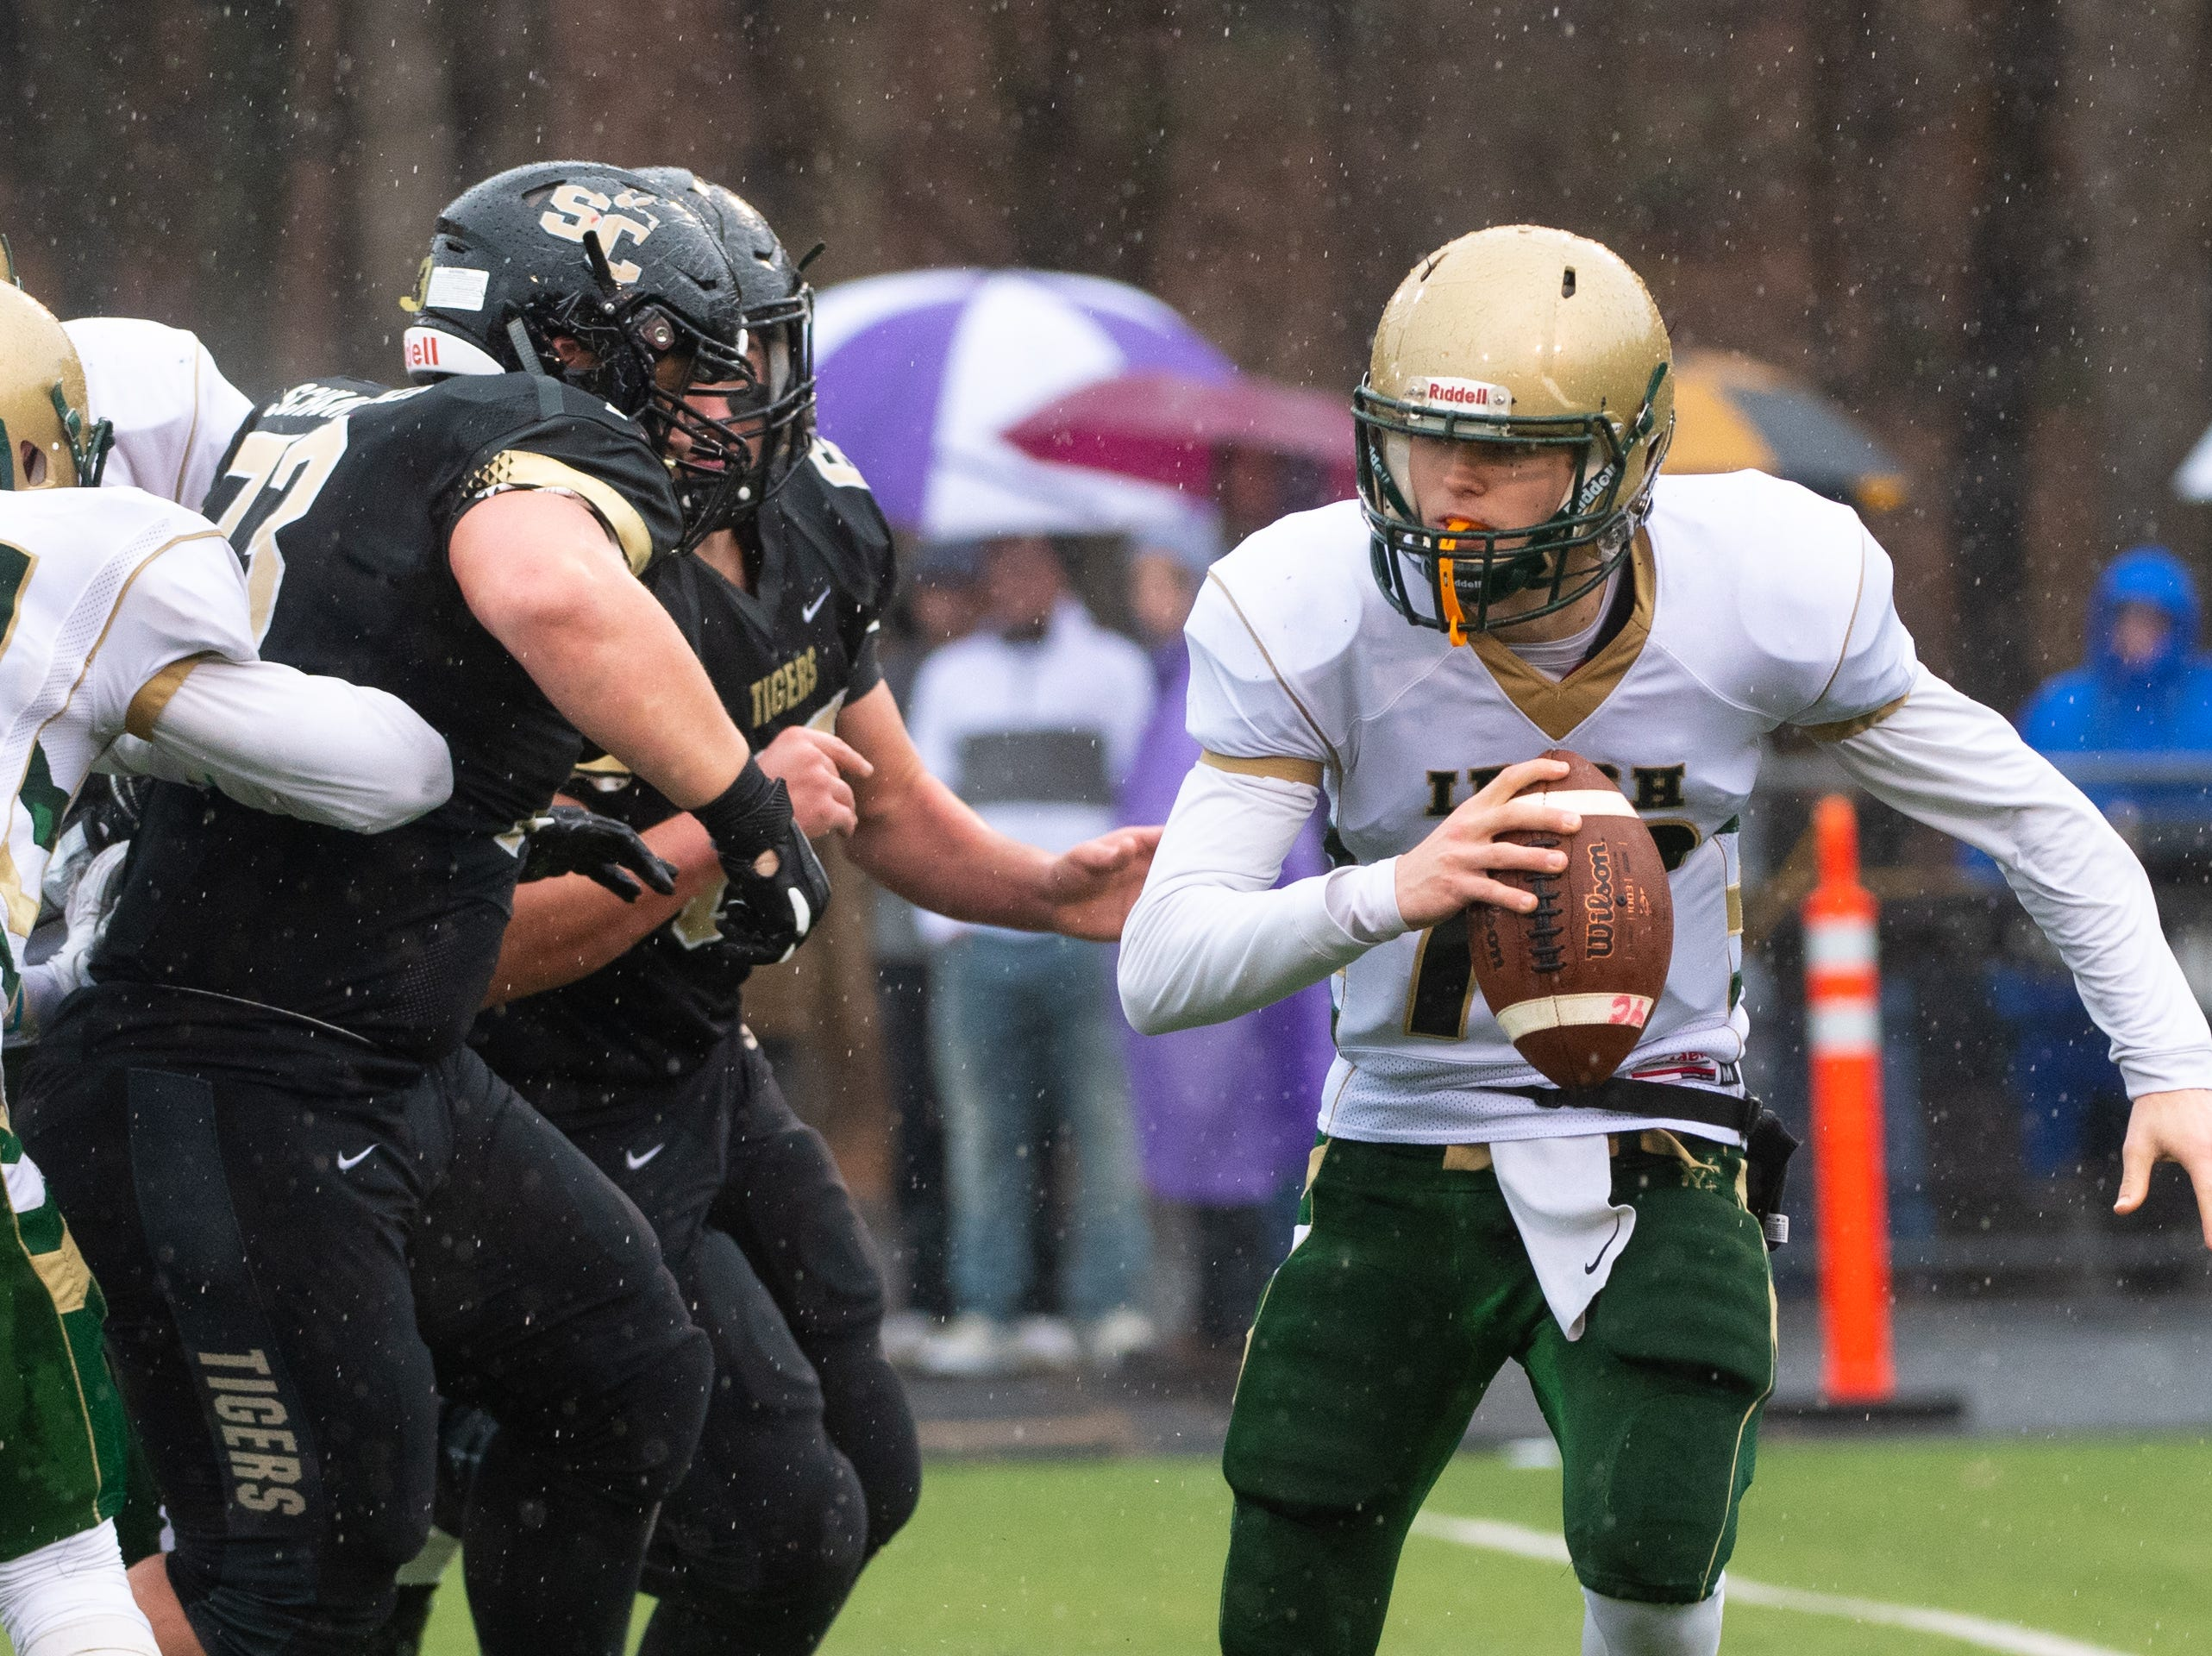 Wesley Burns (18) decides to run the ball himself during the state quarter-finals game between York Catholic and Southern Columbia at Shamokin Area High School, November 24, 2018. The Tigers defeated the Irish 56-23.